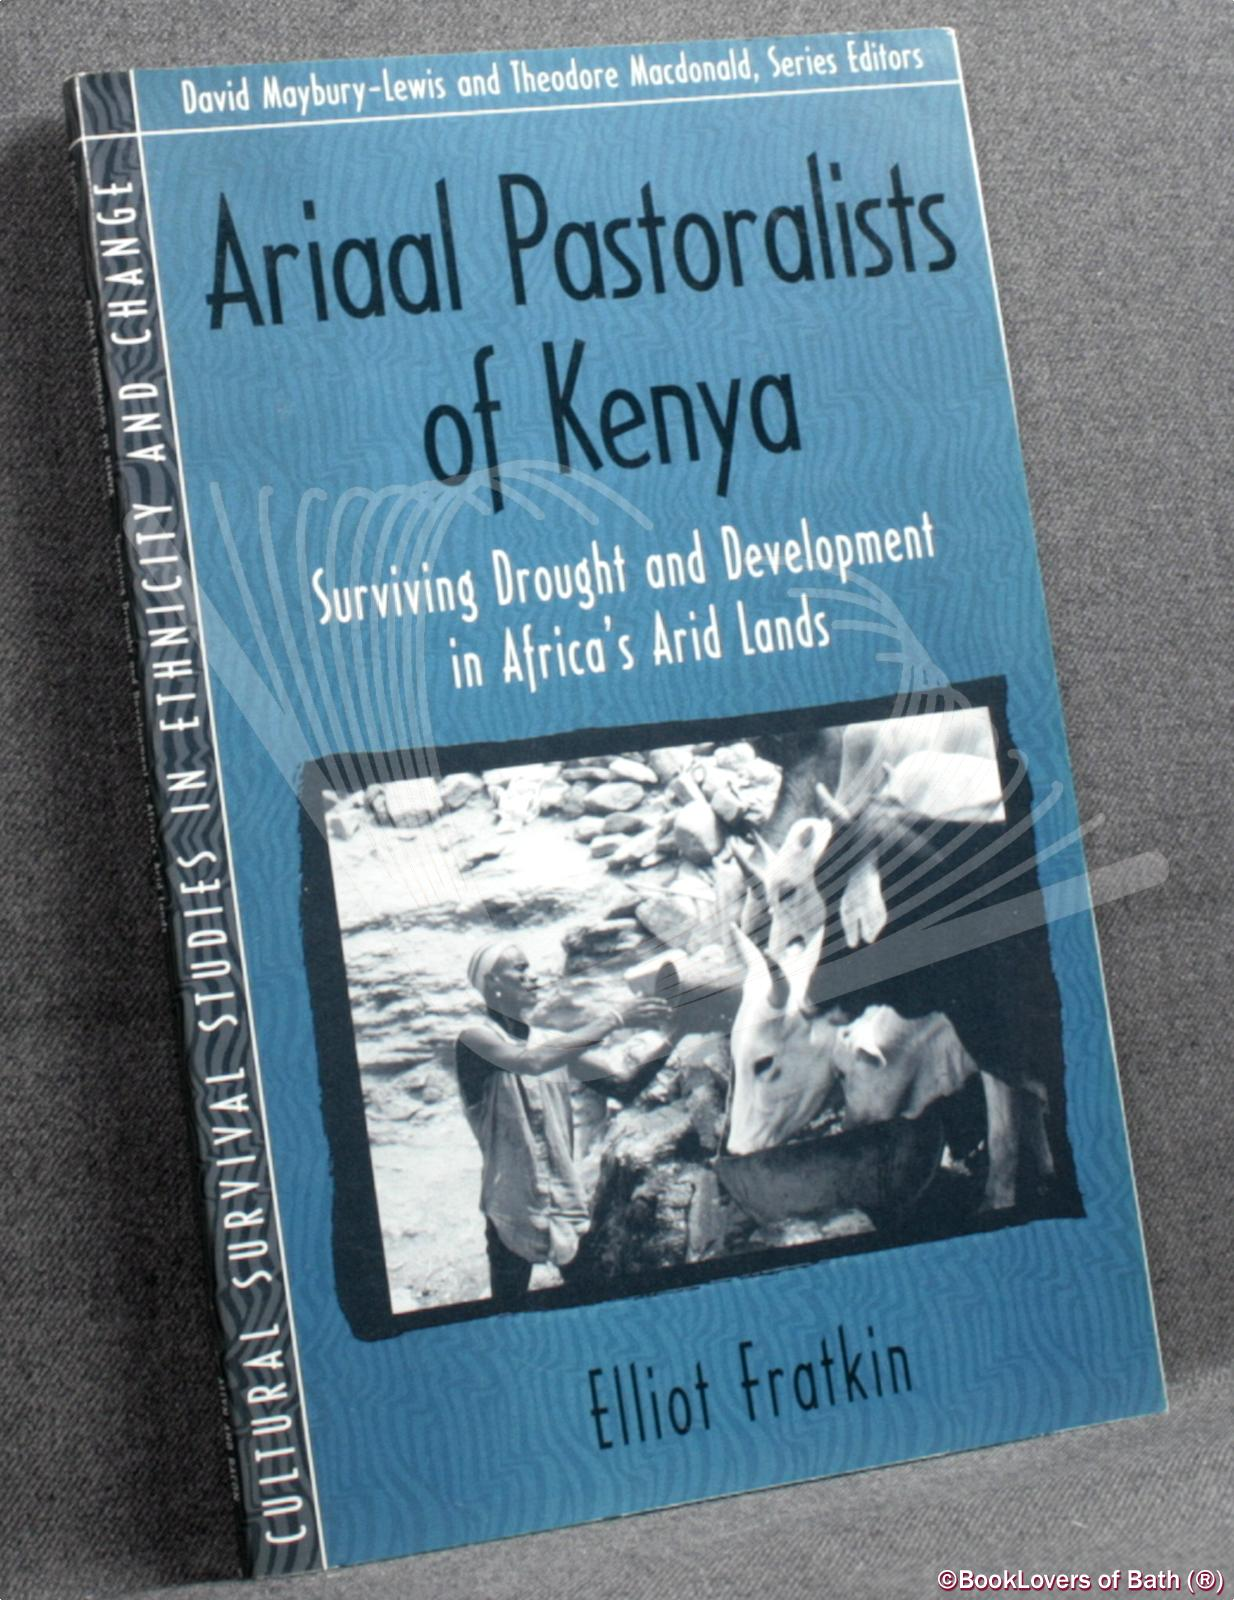 Ariaal Pastoralists of Kenya: Surviving Drought and Development in Africa's Arid Lands - Elliot Fratkin & Smith College